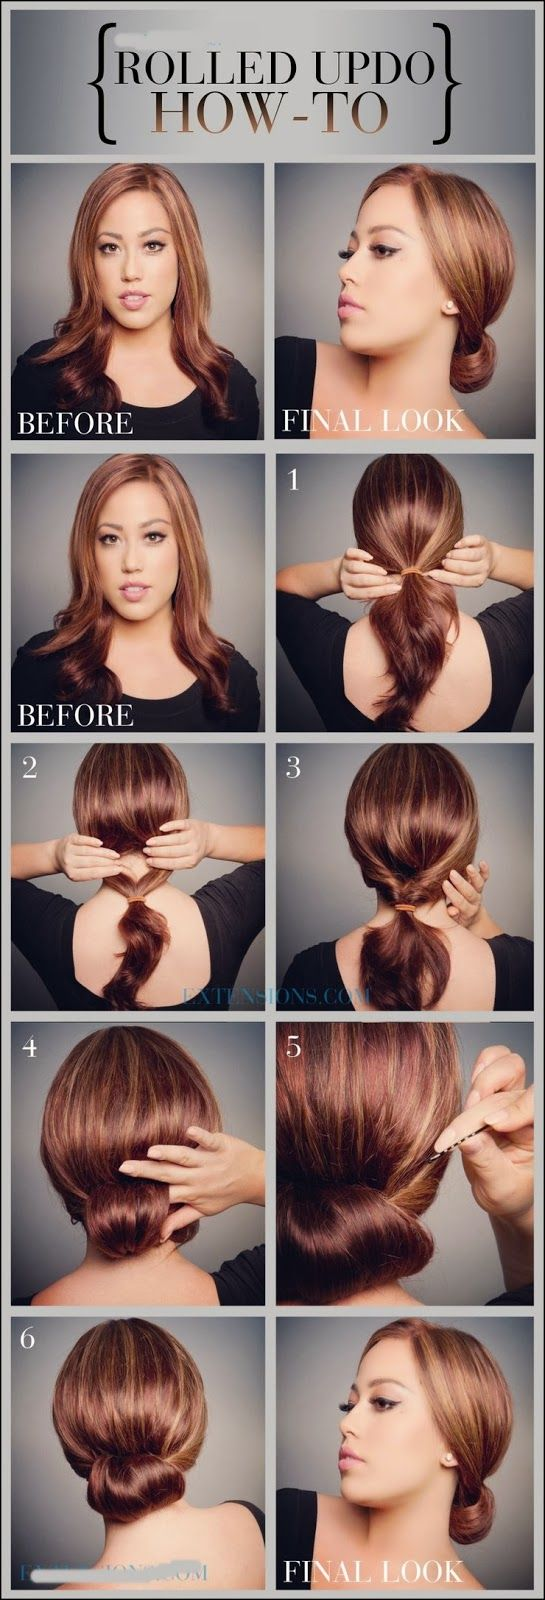 Check out this super easy simple curly updo hairstyle tutorial to look your best on any special day!